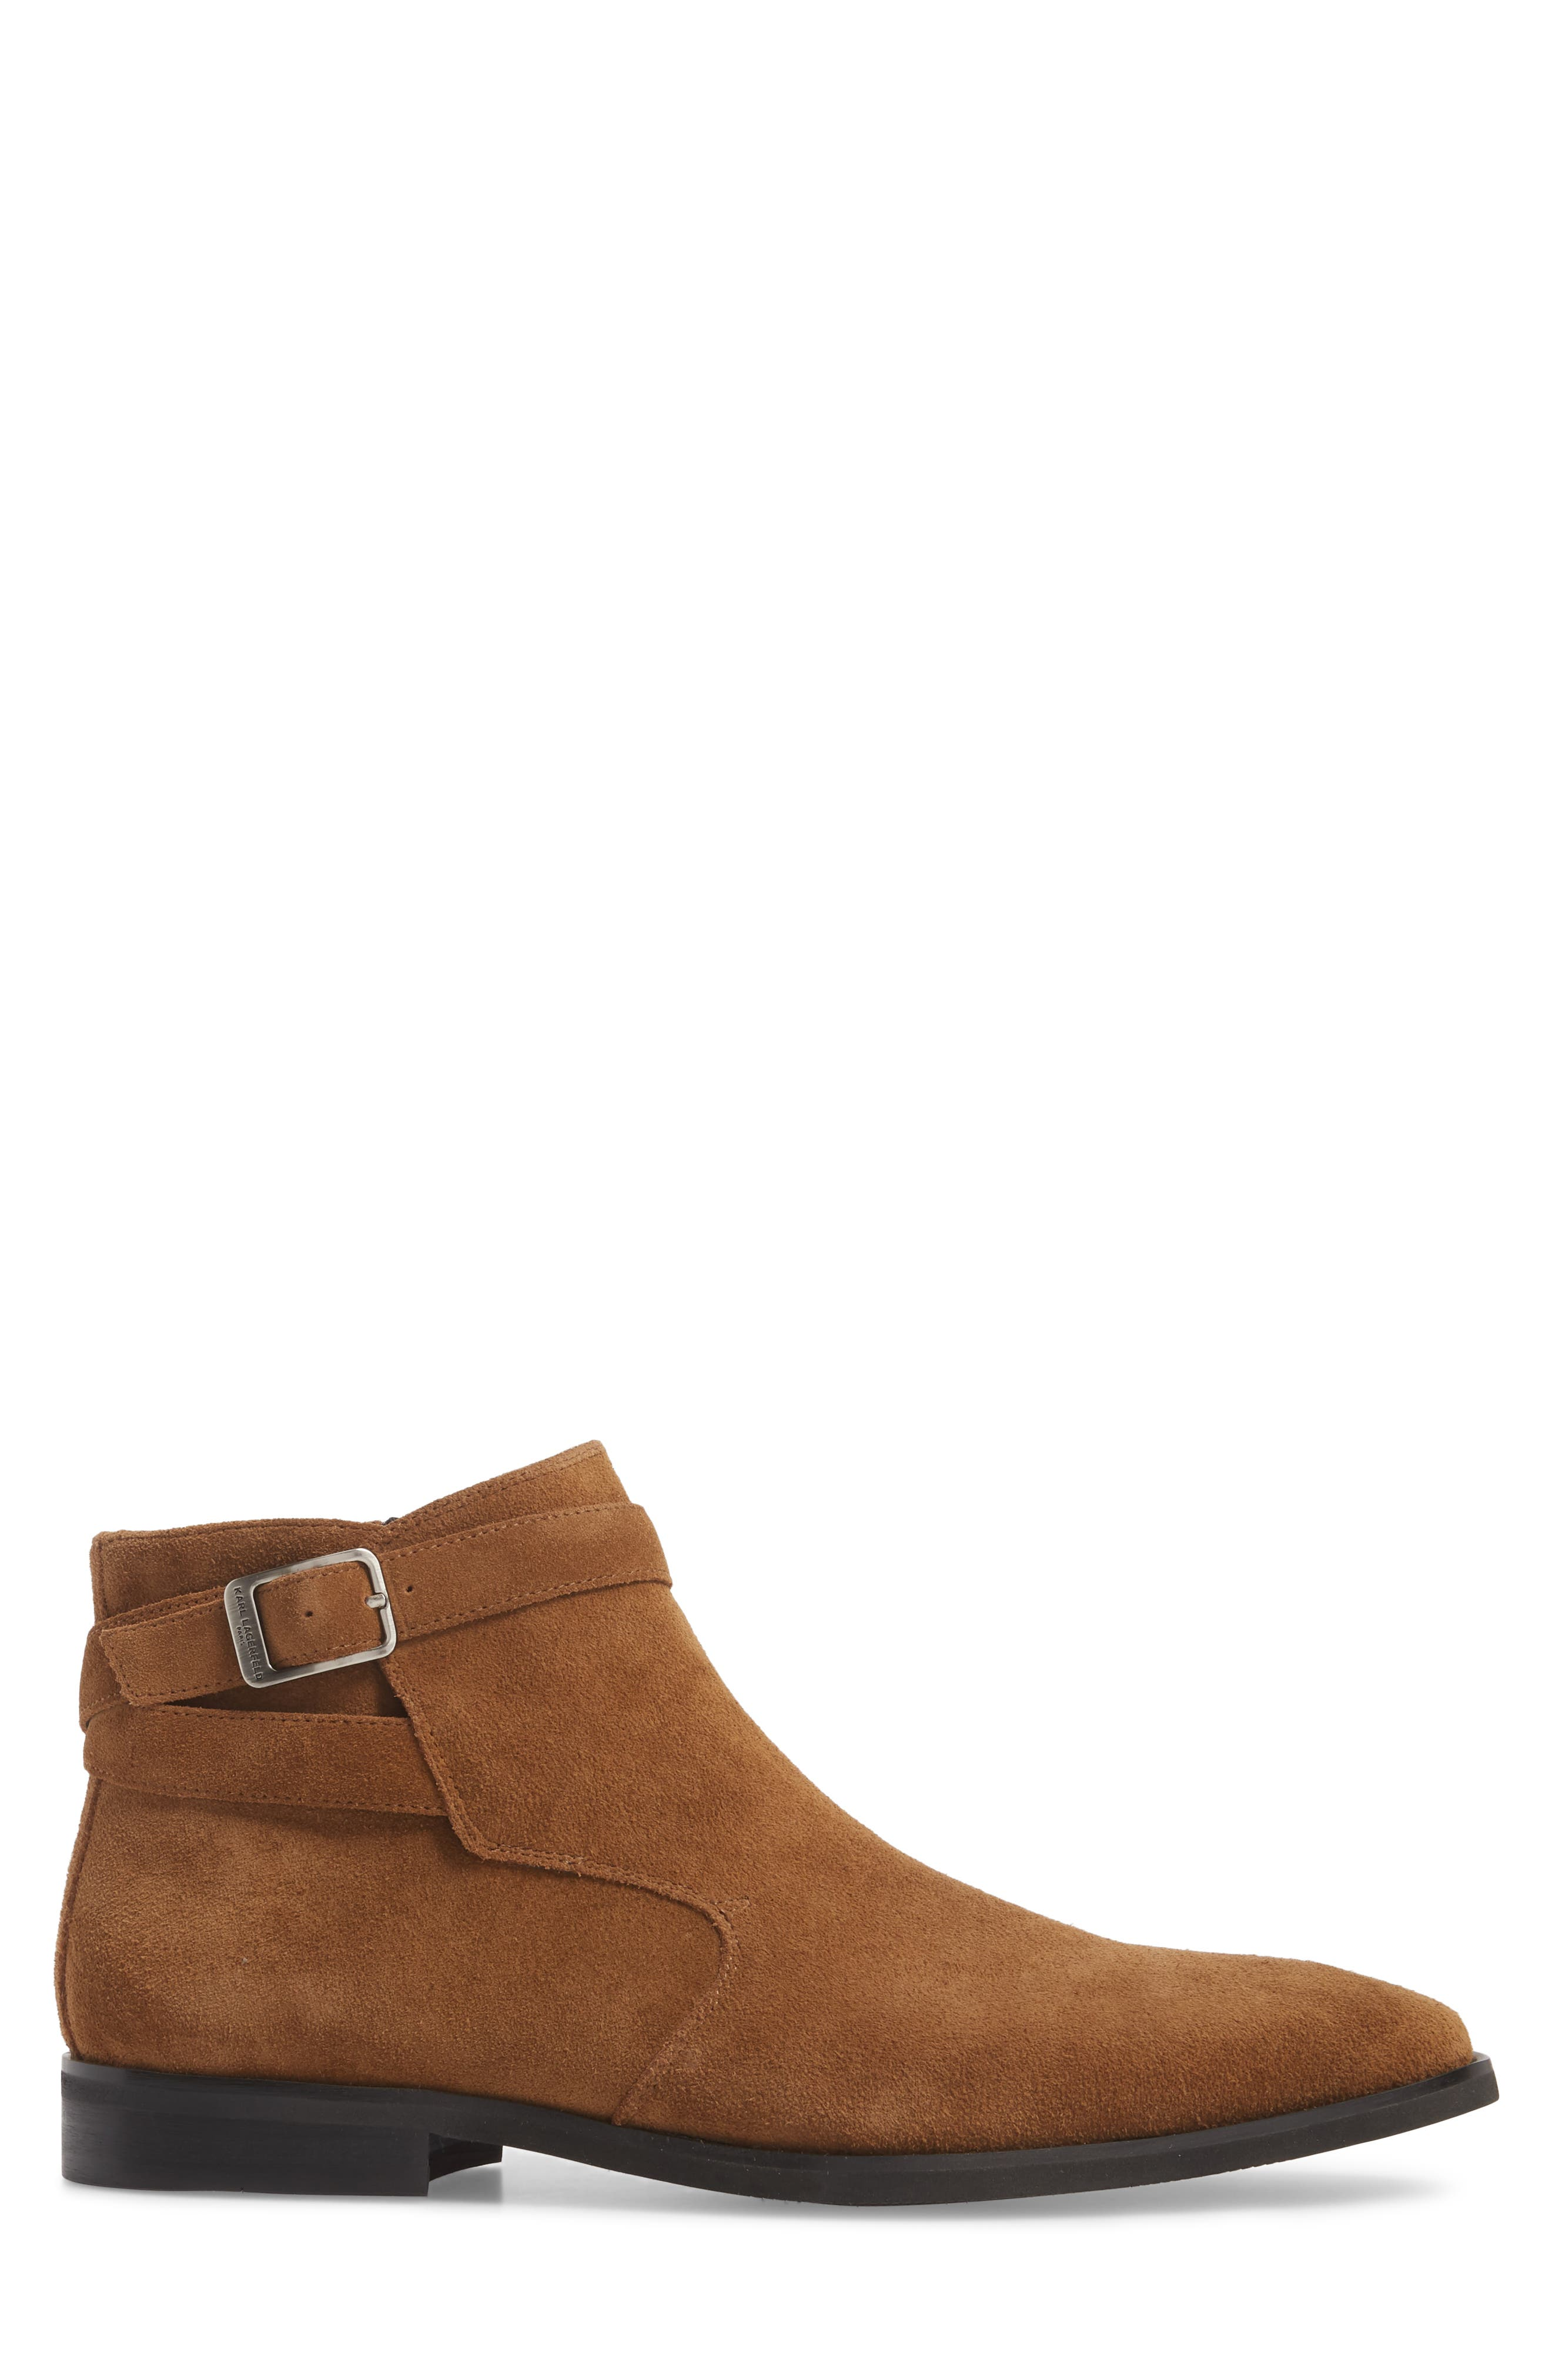 Ankle Wrap Boot,                             Alternate thumbnail 3, color,                             Desert